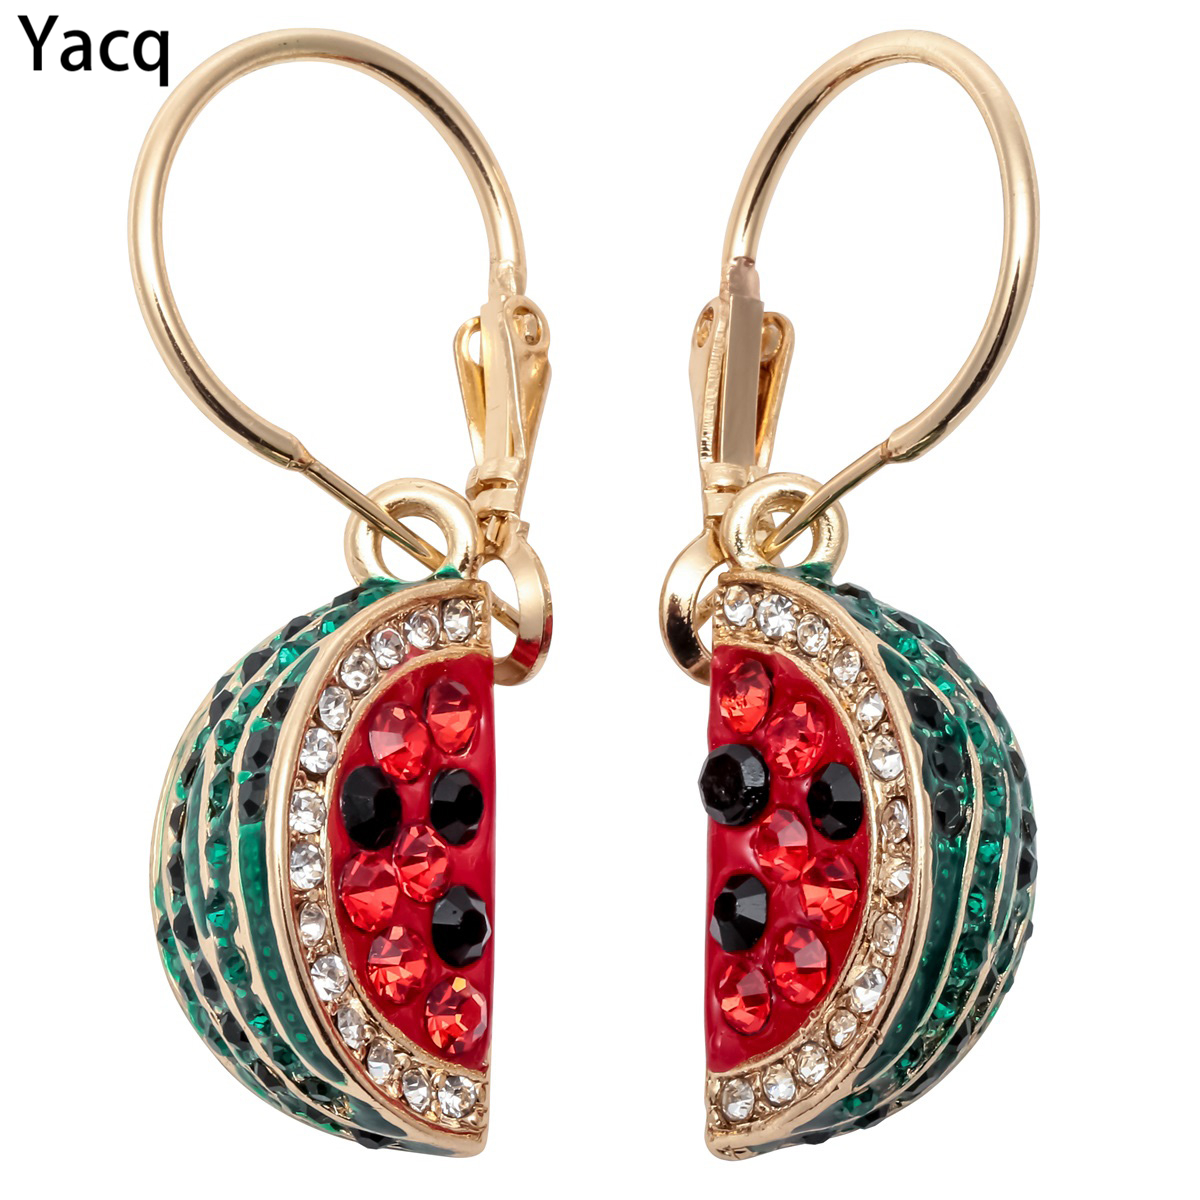 YACQ Watermelon Dangle Drop Earrings Women Red Fashion Jewelry Gifts Mom Crystal Charm Gold Silver Plated ED01 Dropshipping все цены